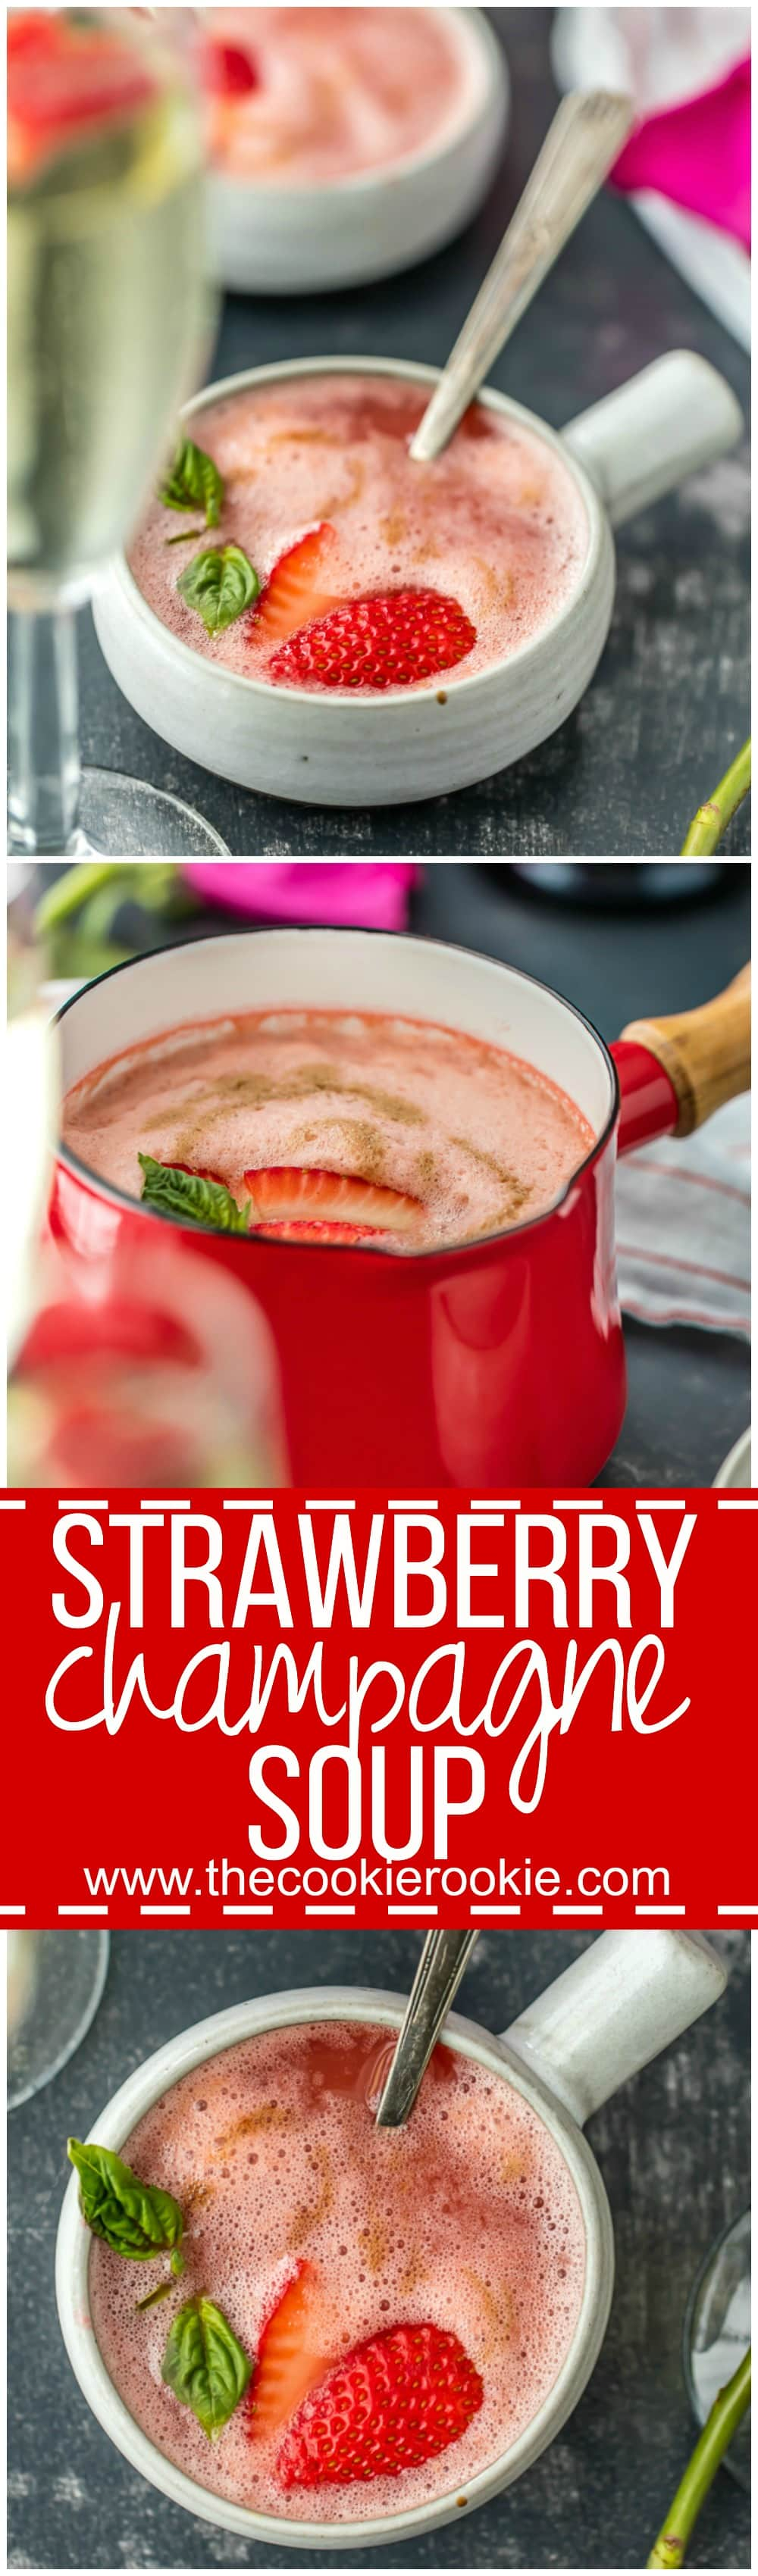 Strawberry Champagne Soup, served hot or cold, is the perfect side dish or appetizer for Valentine's Day, baby showers, bridal showers, or breakfast in bed! Beautiful and easy strawberry soup!